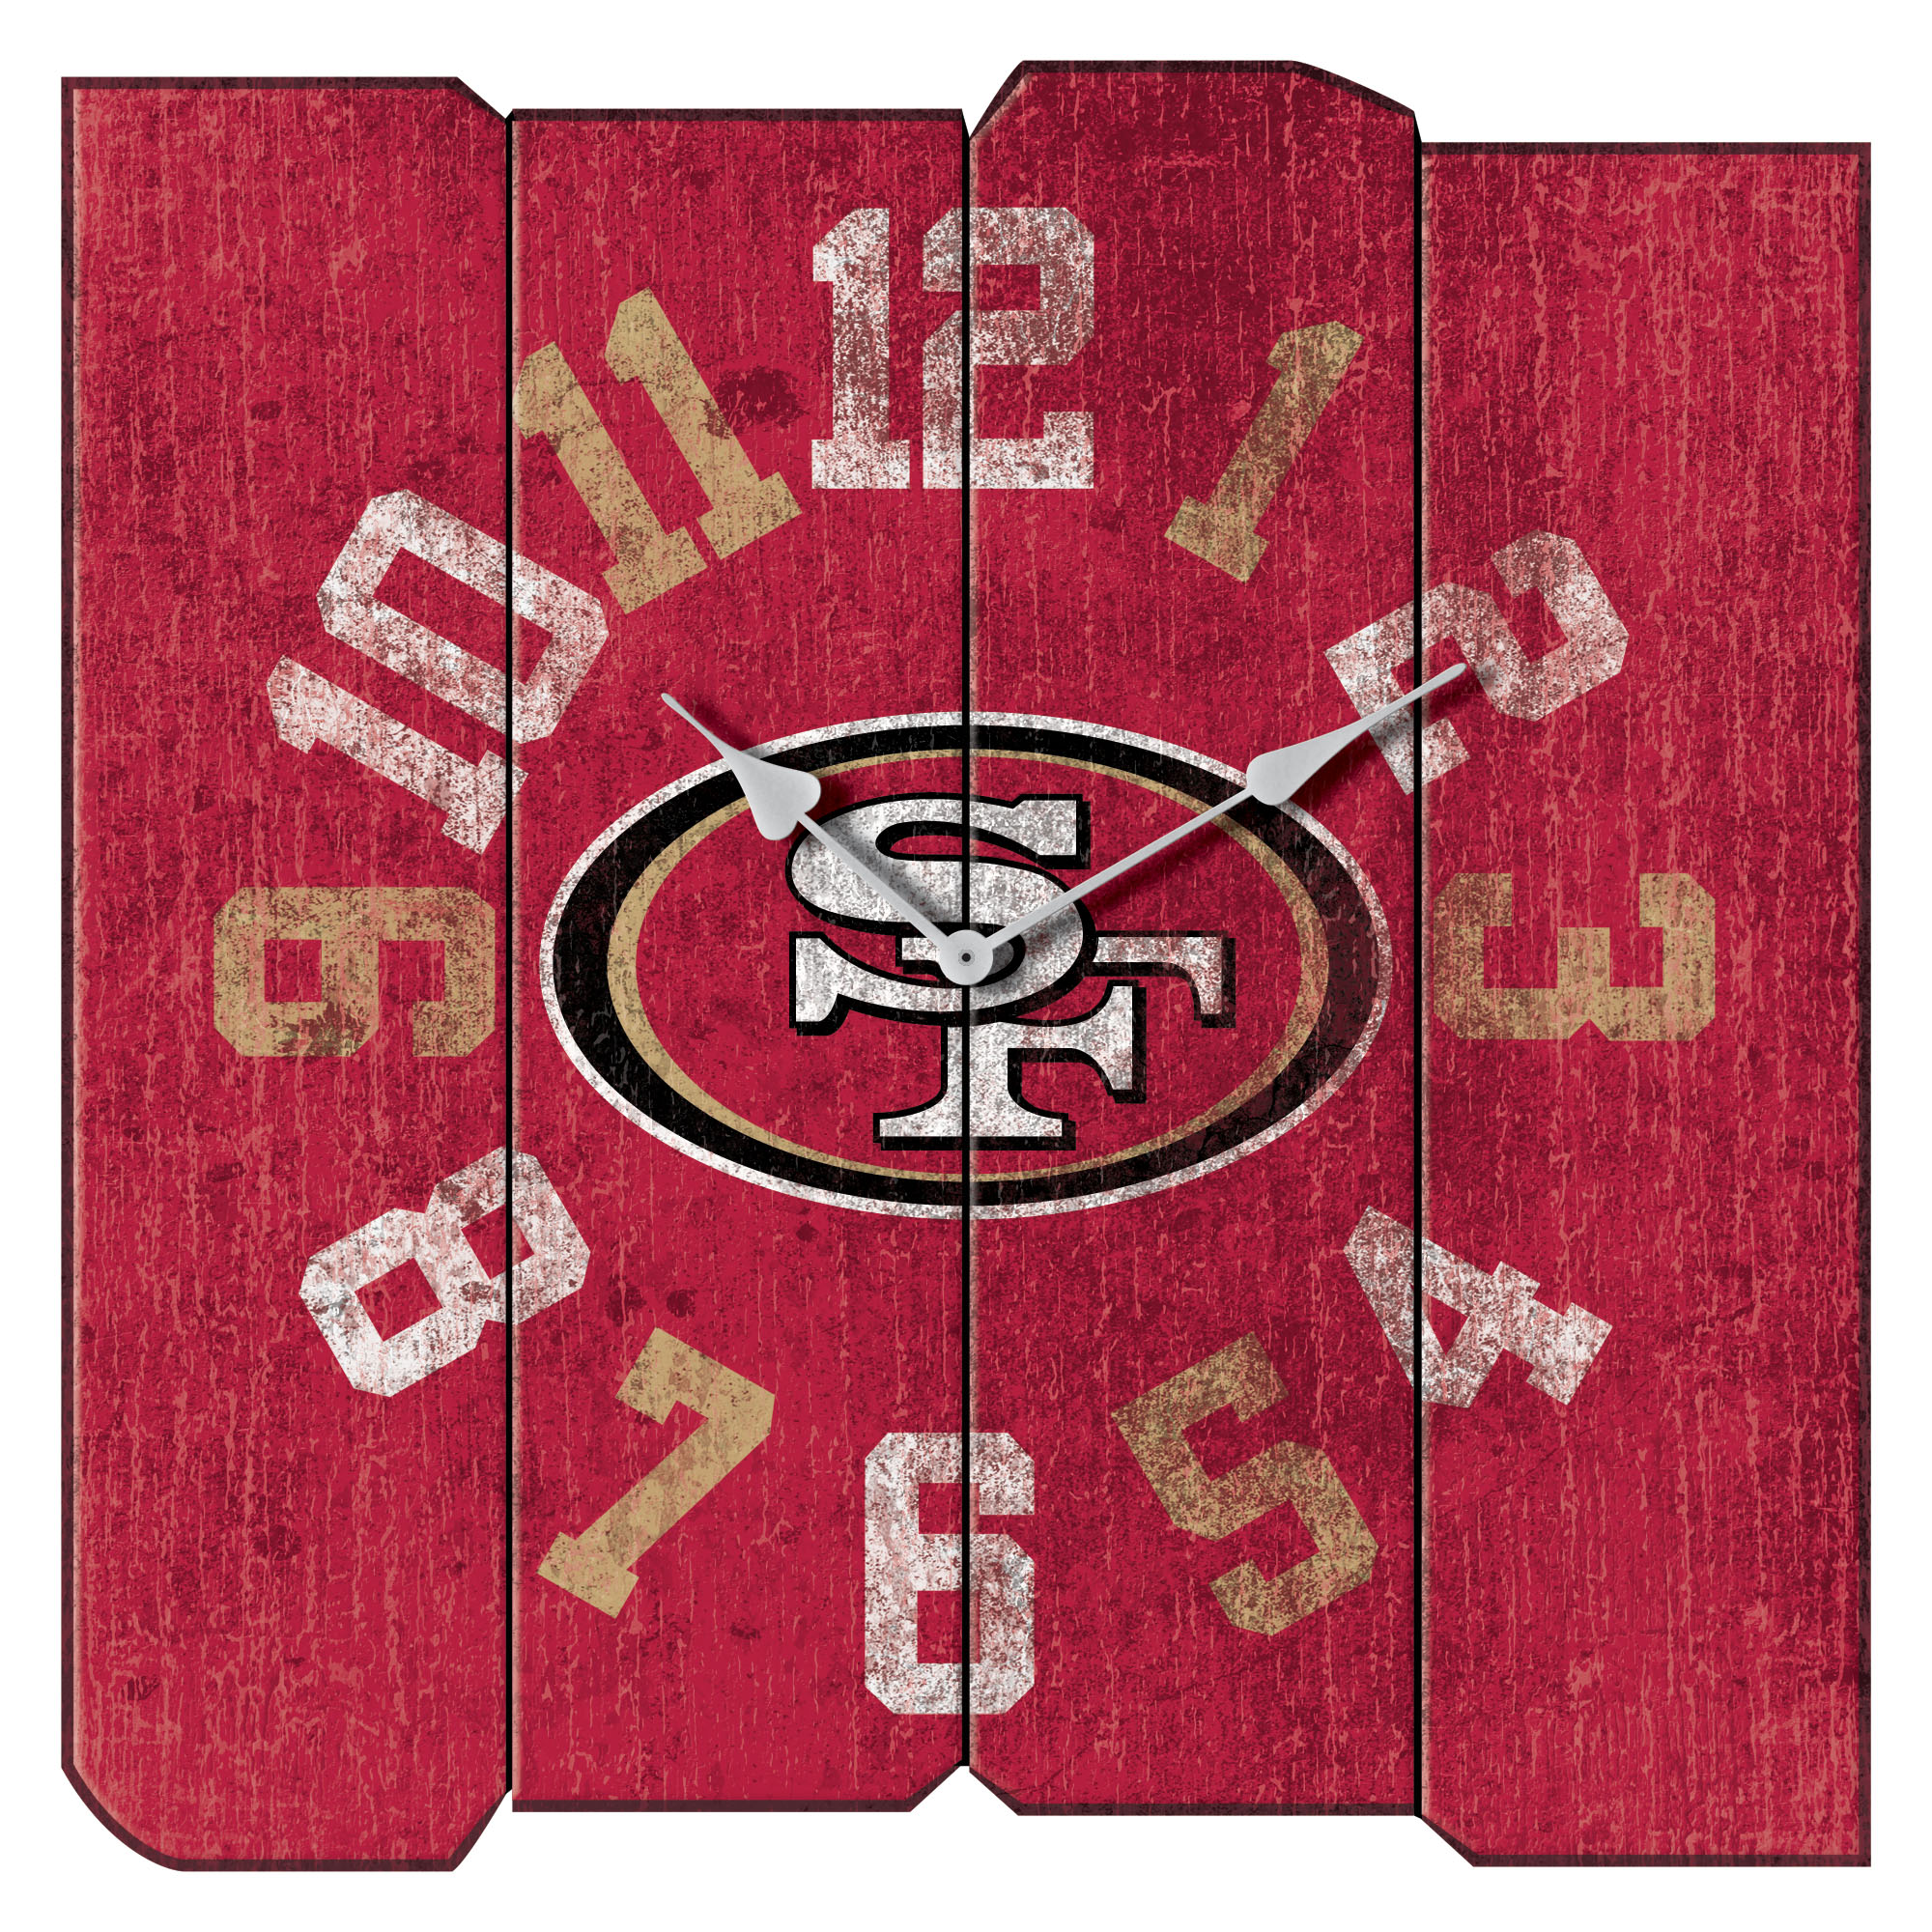 "San Francisco 49ers 16"" Vintage Sqaure Wall Clock - Scarlet - No Size"